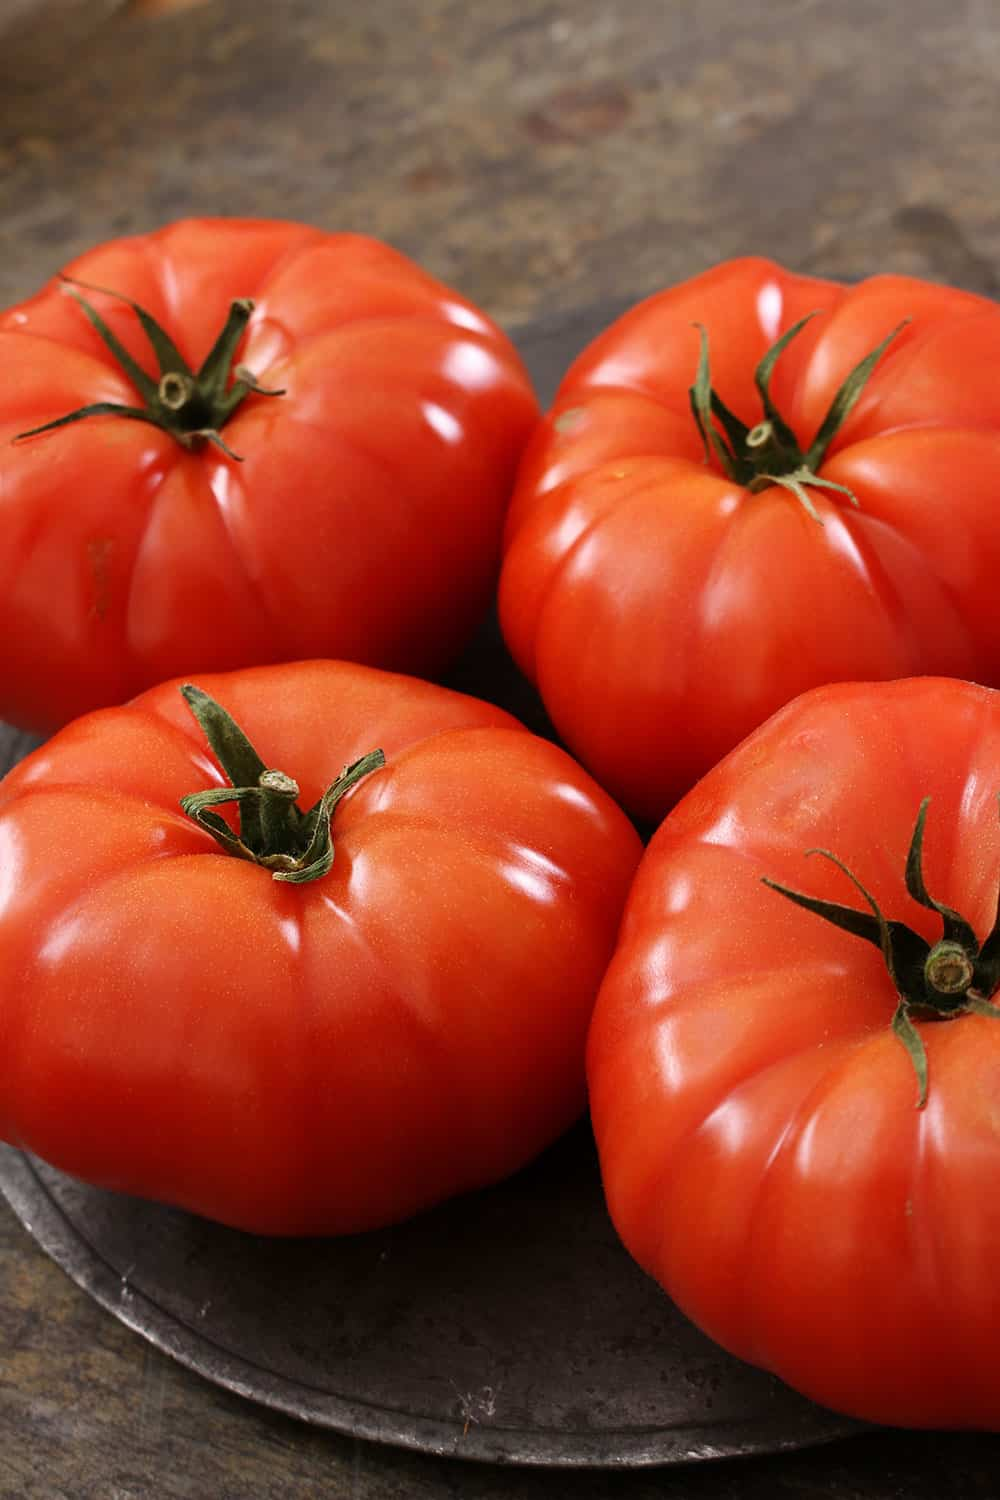 Four ripe beefsteak tomatoes sitting next to each other on a brown plate.